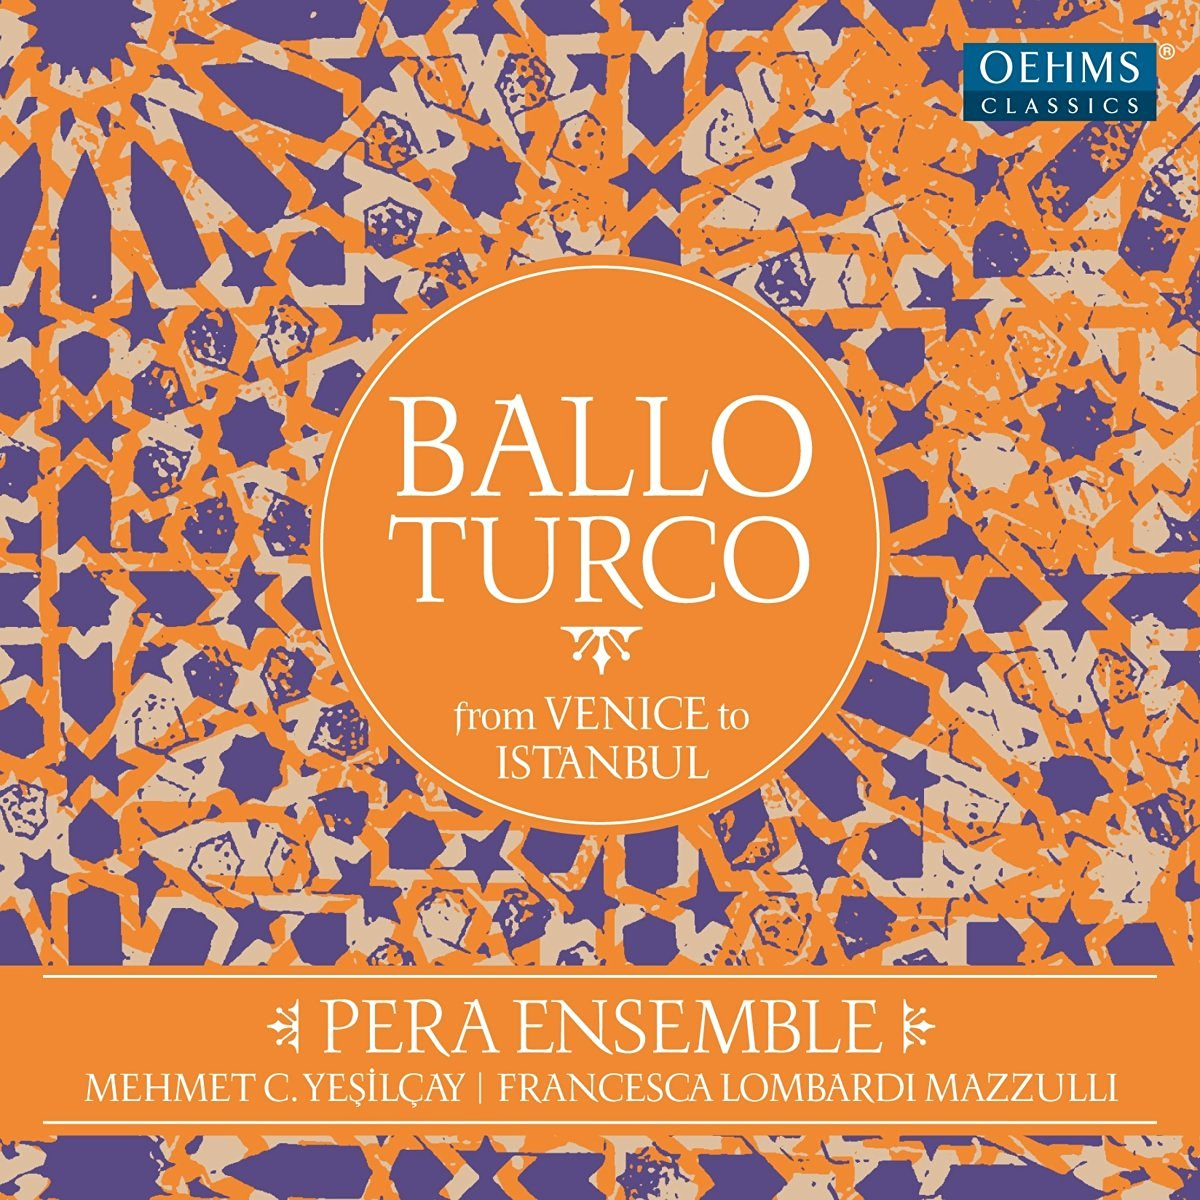 IN REVIEW: BALLO TURCO - From Venice to Istanbul (Oehms Classics OC 1858 / OC 1860)